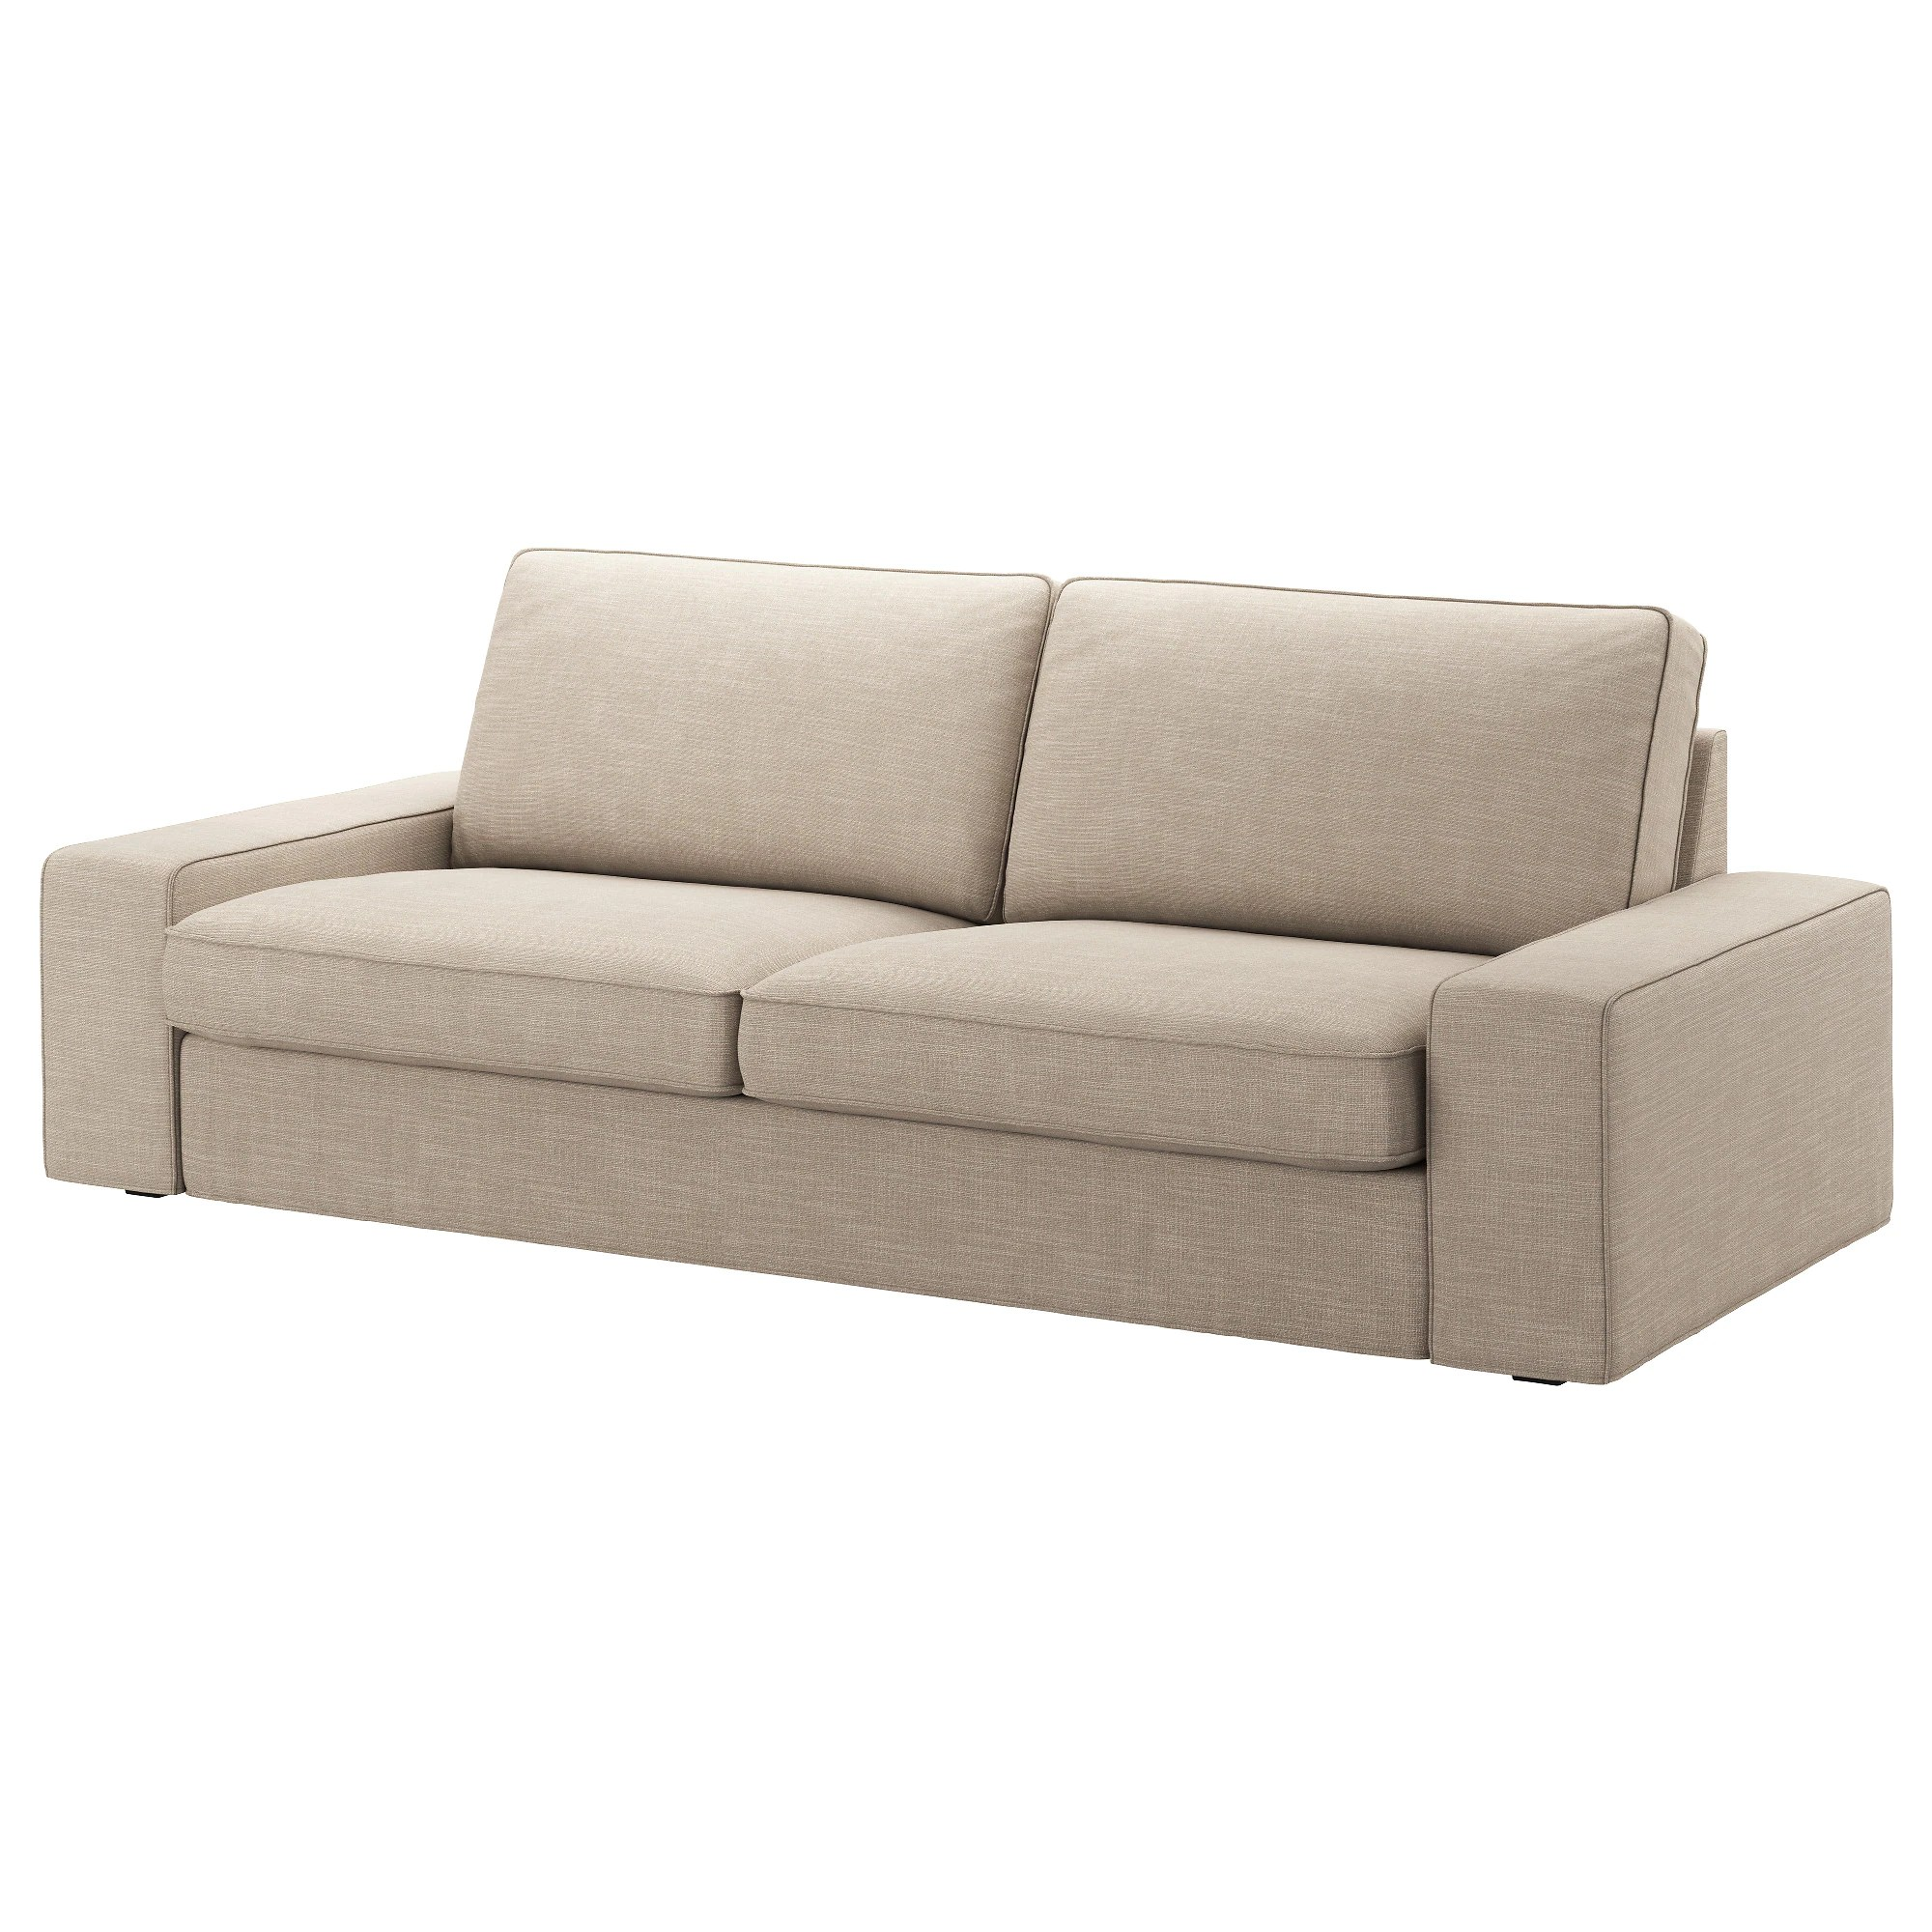 Sofa 3er Ikea Kivik Sofa Orrsta Light Gray